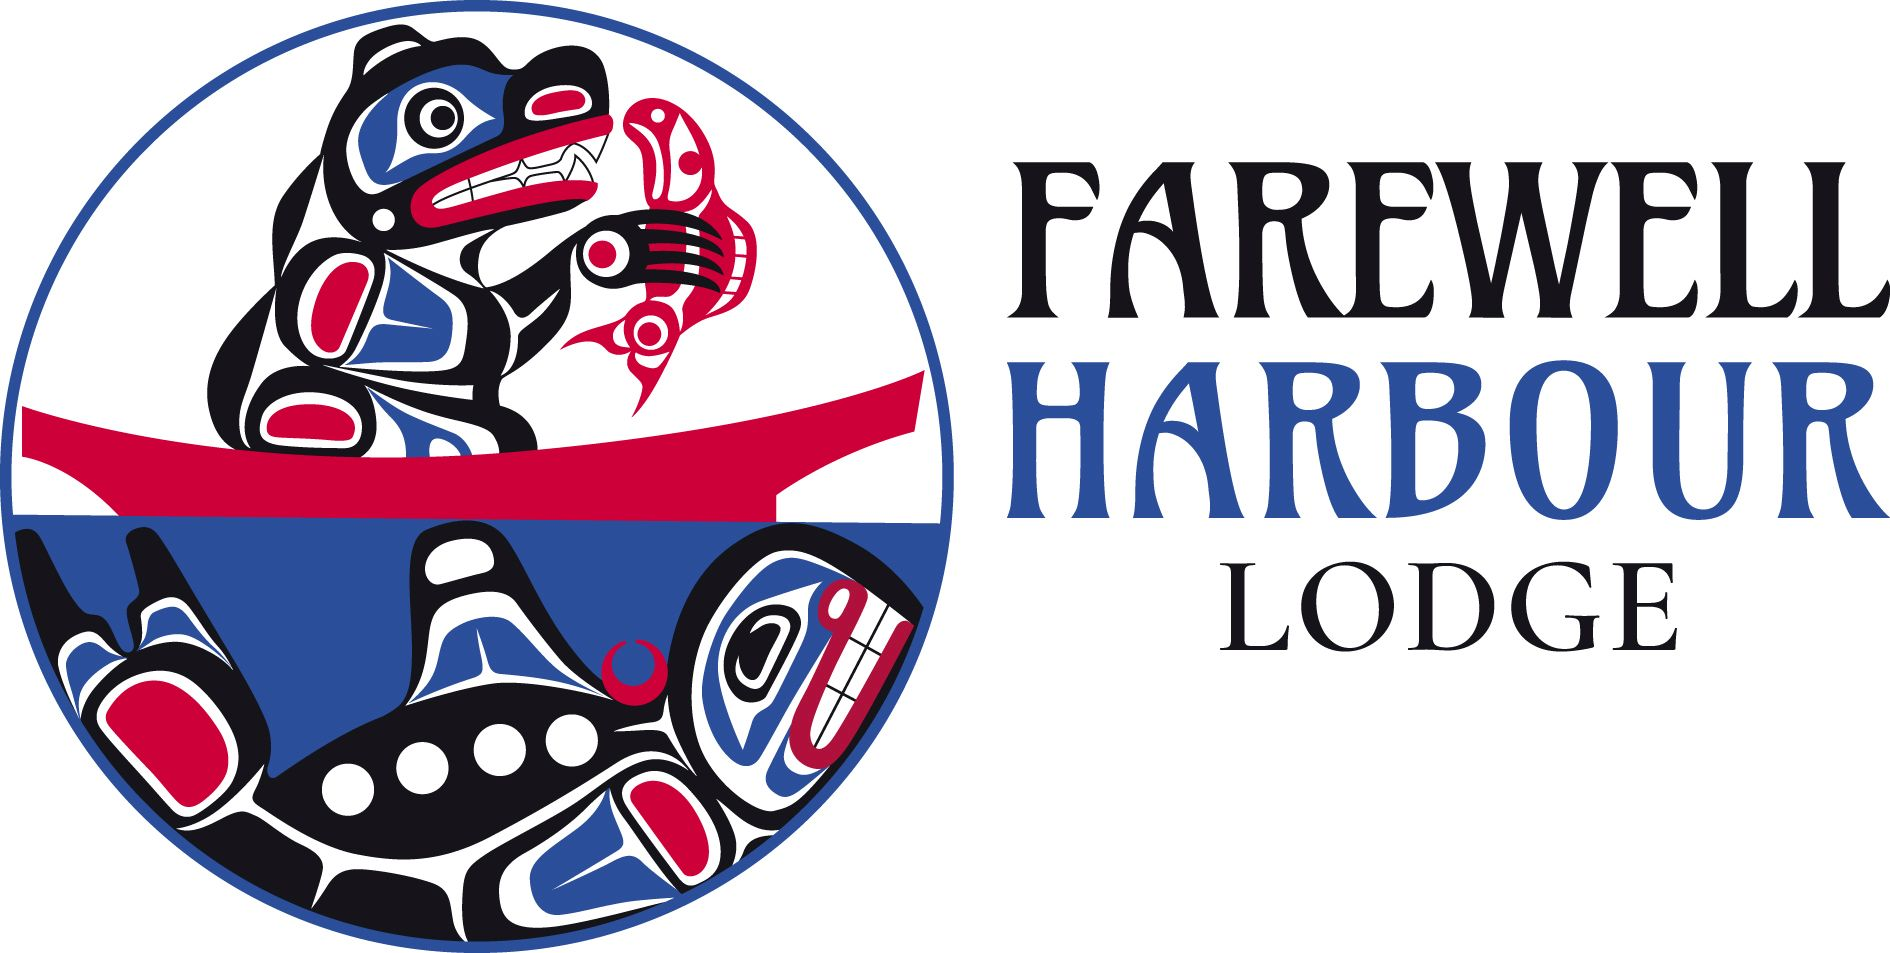 Farewell Harbour Lodge - Title Sponsor of the 2019 SNSC Wine and Cheese Fundraiser